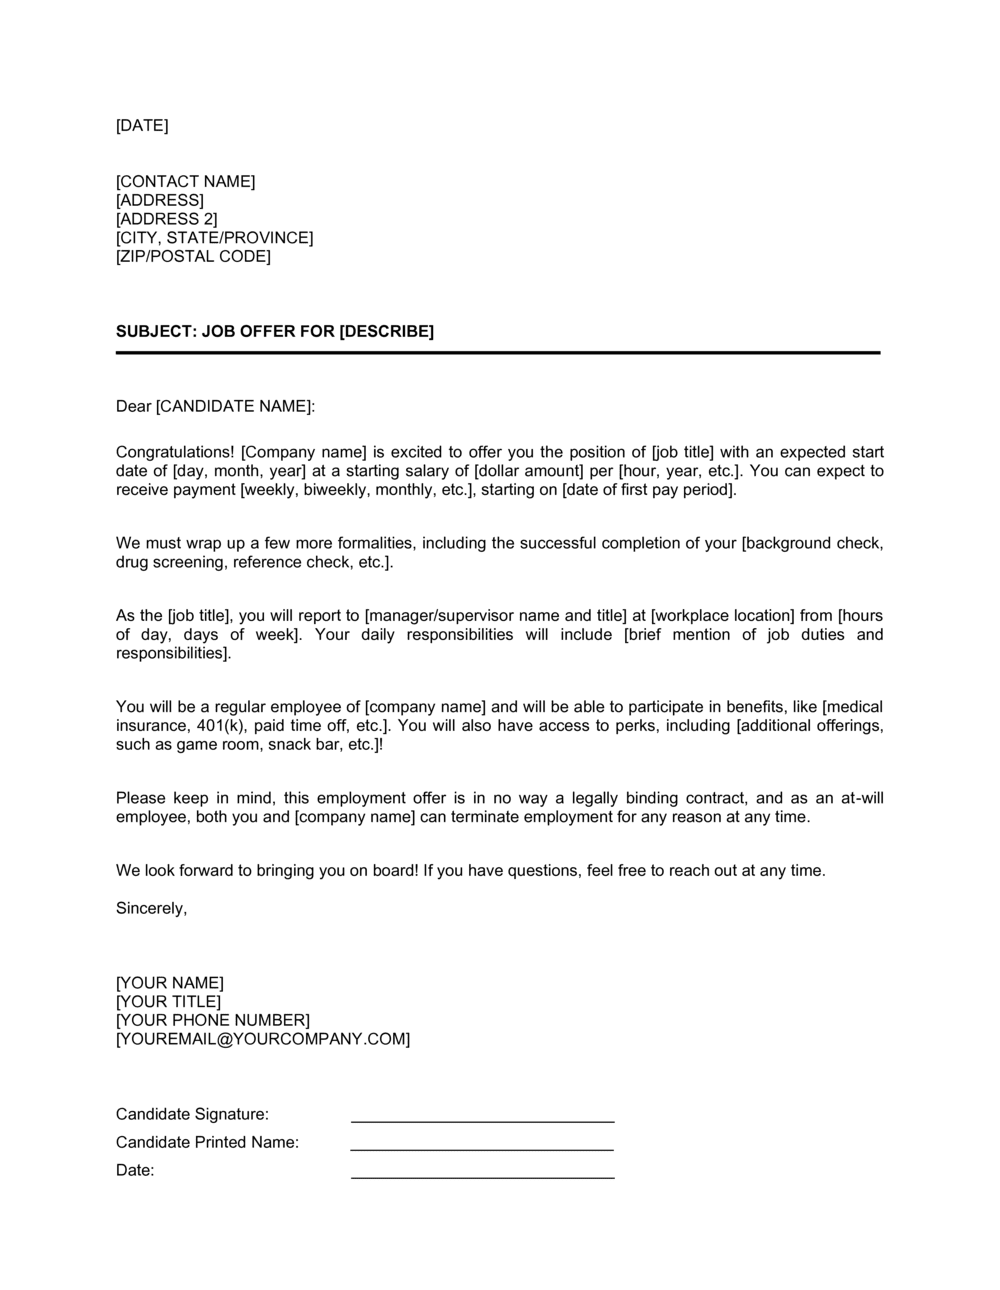 Business-in-a-Box's Job Offer Letter Long Template